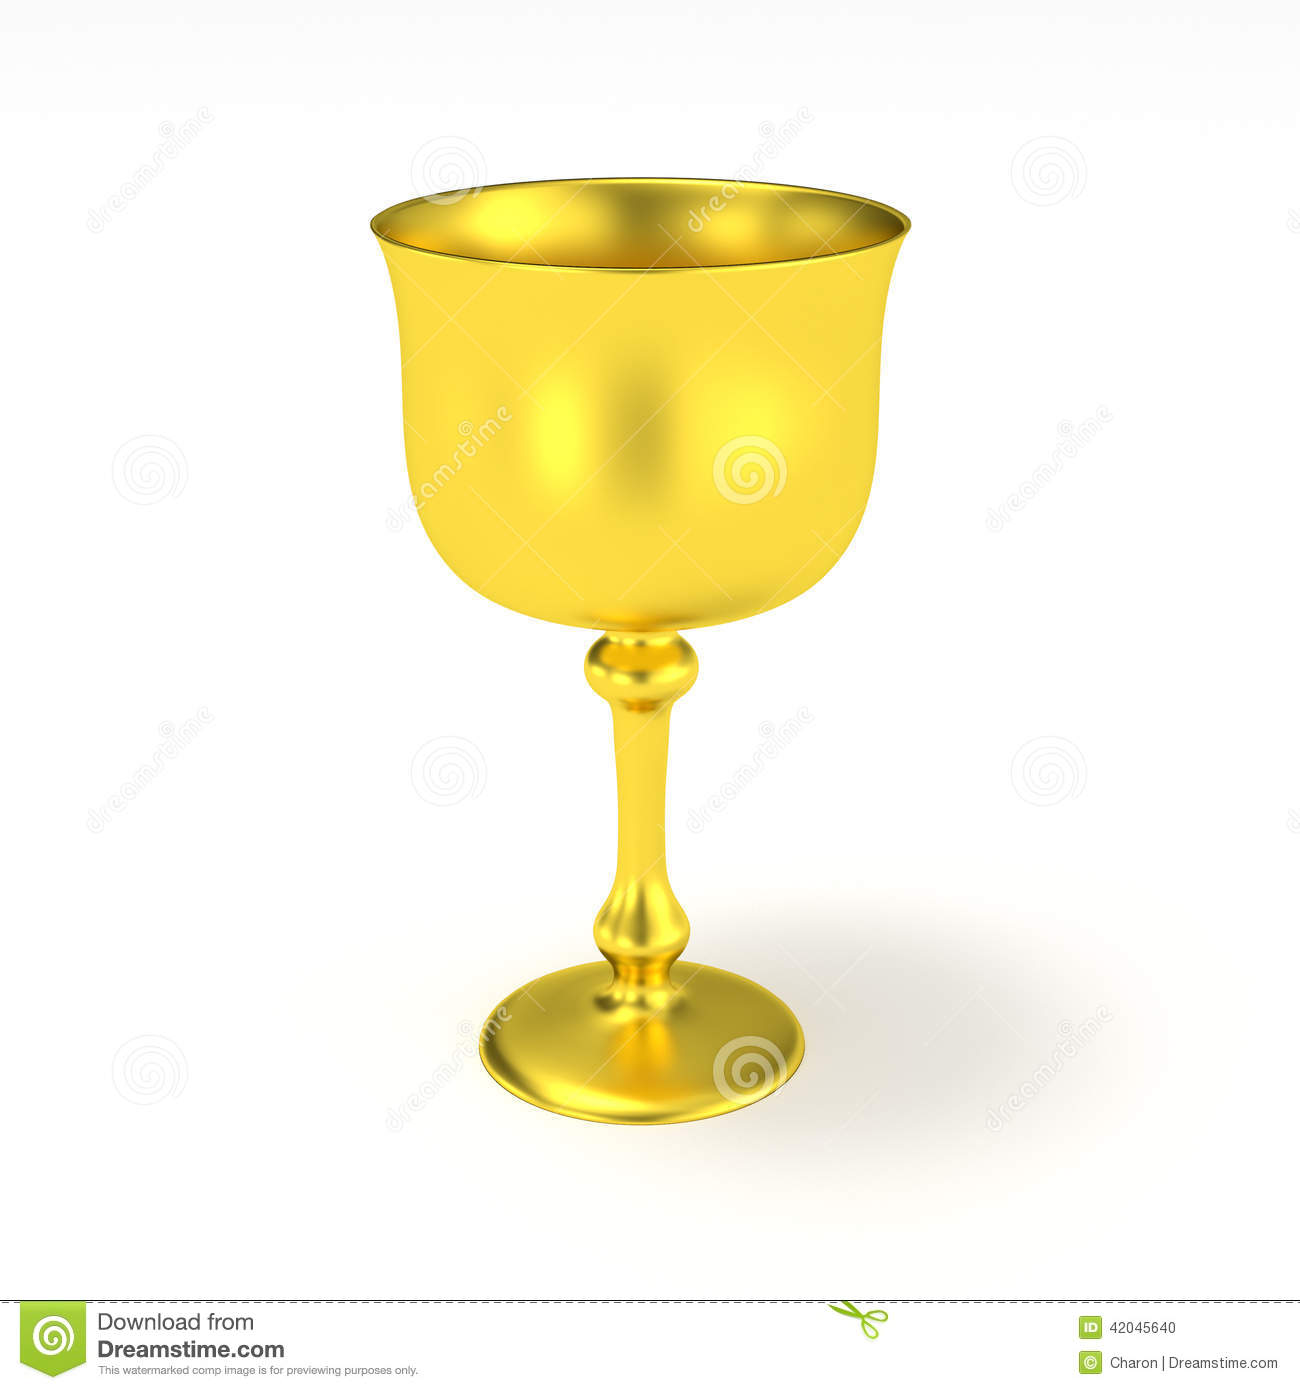 Golden Goblet Holy Grail Gold Cup Stock Illustration - Image: 42045640